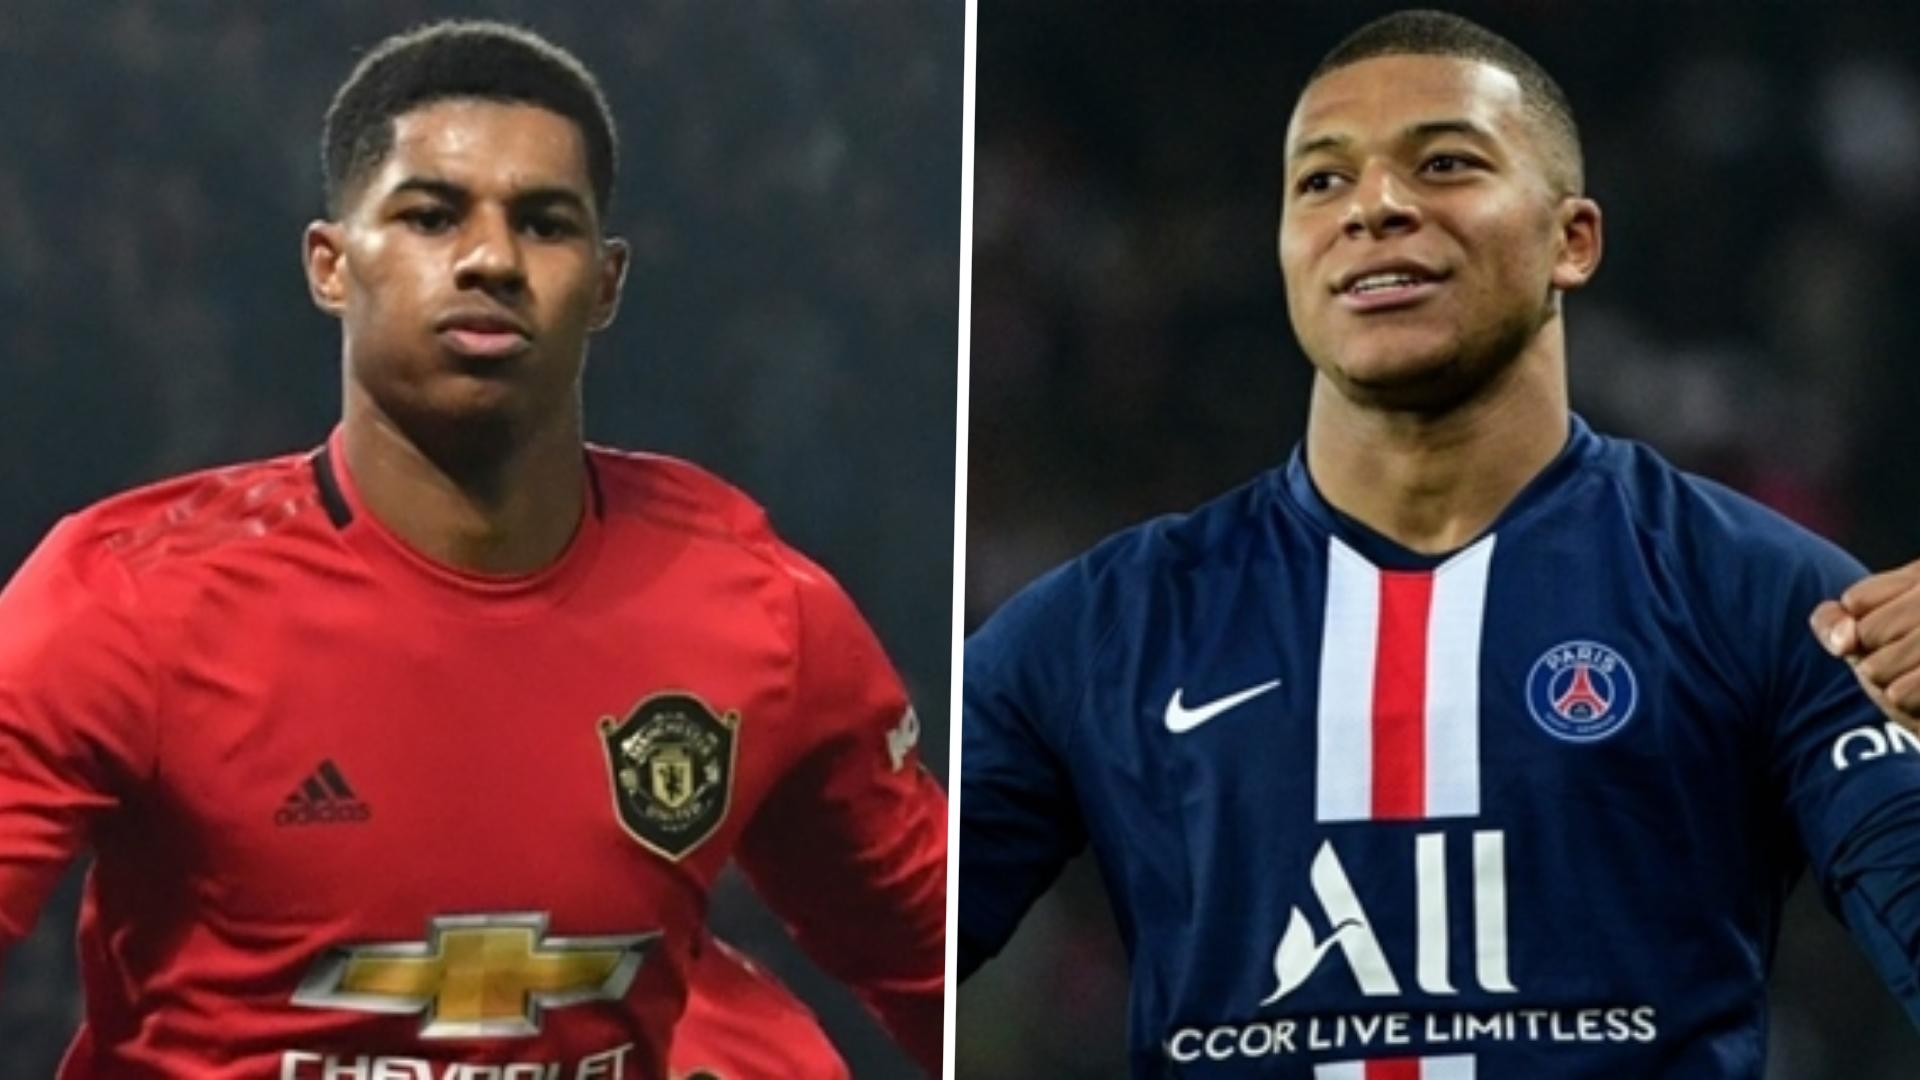 'Rashford is at the same level as Mbappe' - Man Utd star equal to PSG counterpart 'in terms of quality', says Saha